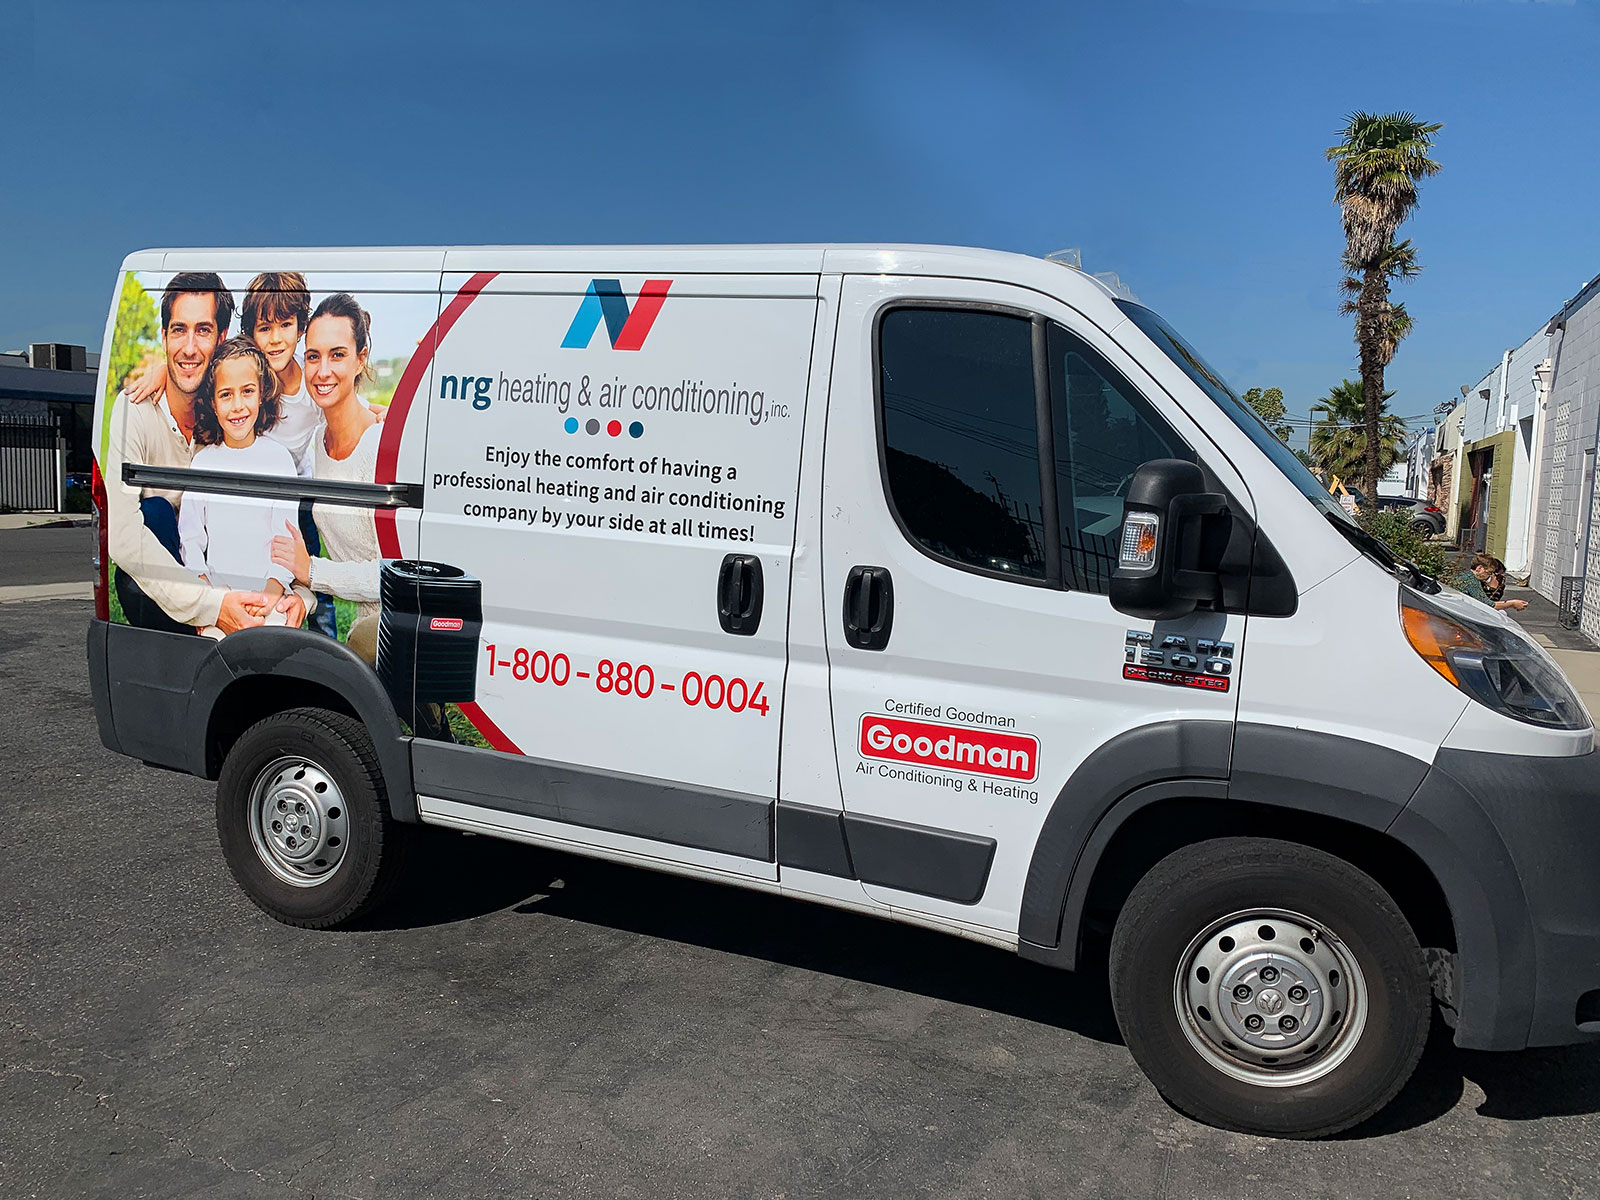 full van commercial wrapping